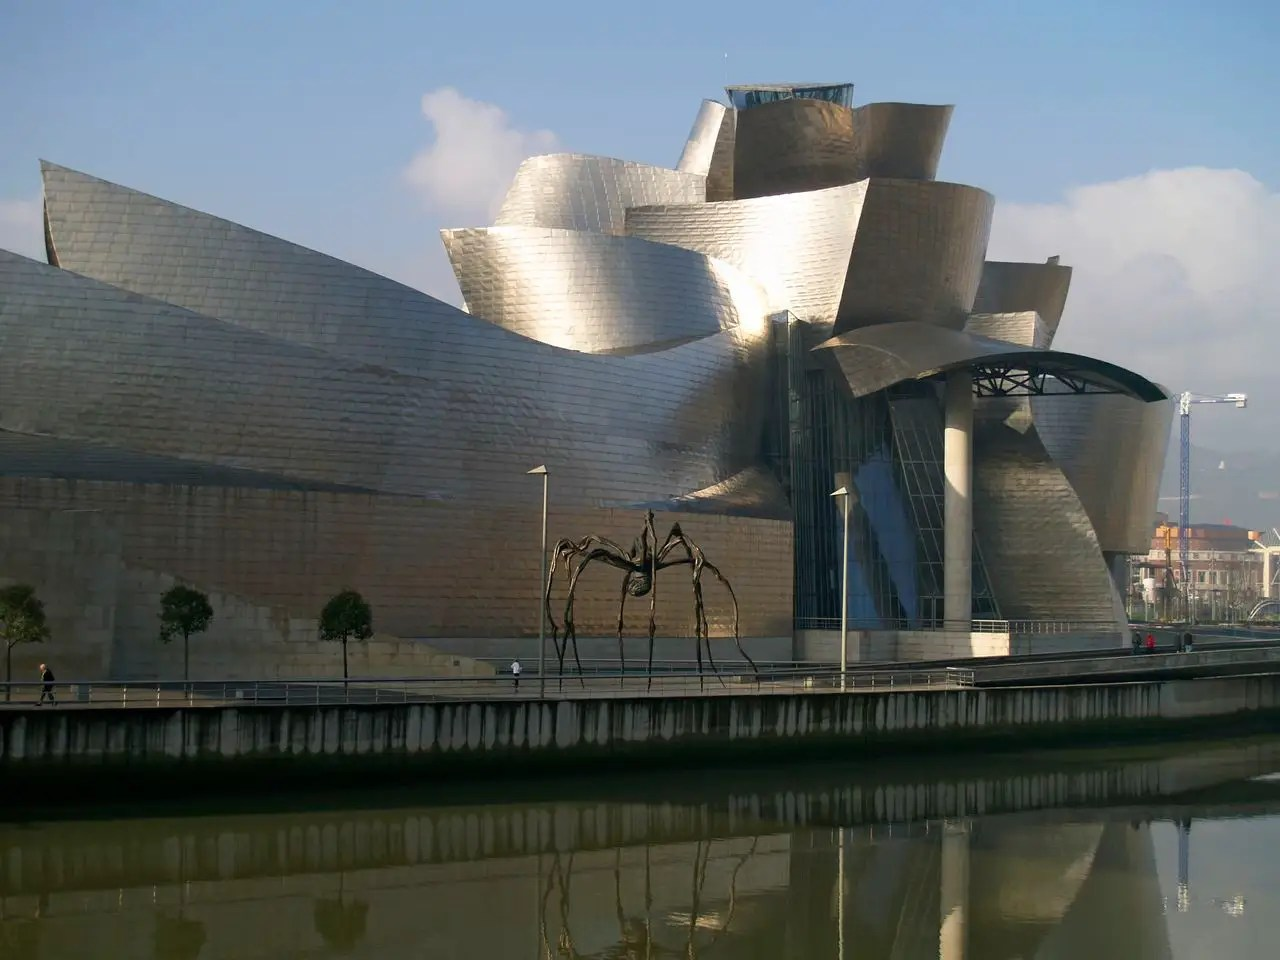 65. Made out of glass, limestone, and titanium, Frank Gehry's Guggenheim Bilbao in Spain shimmers in the sunlight.